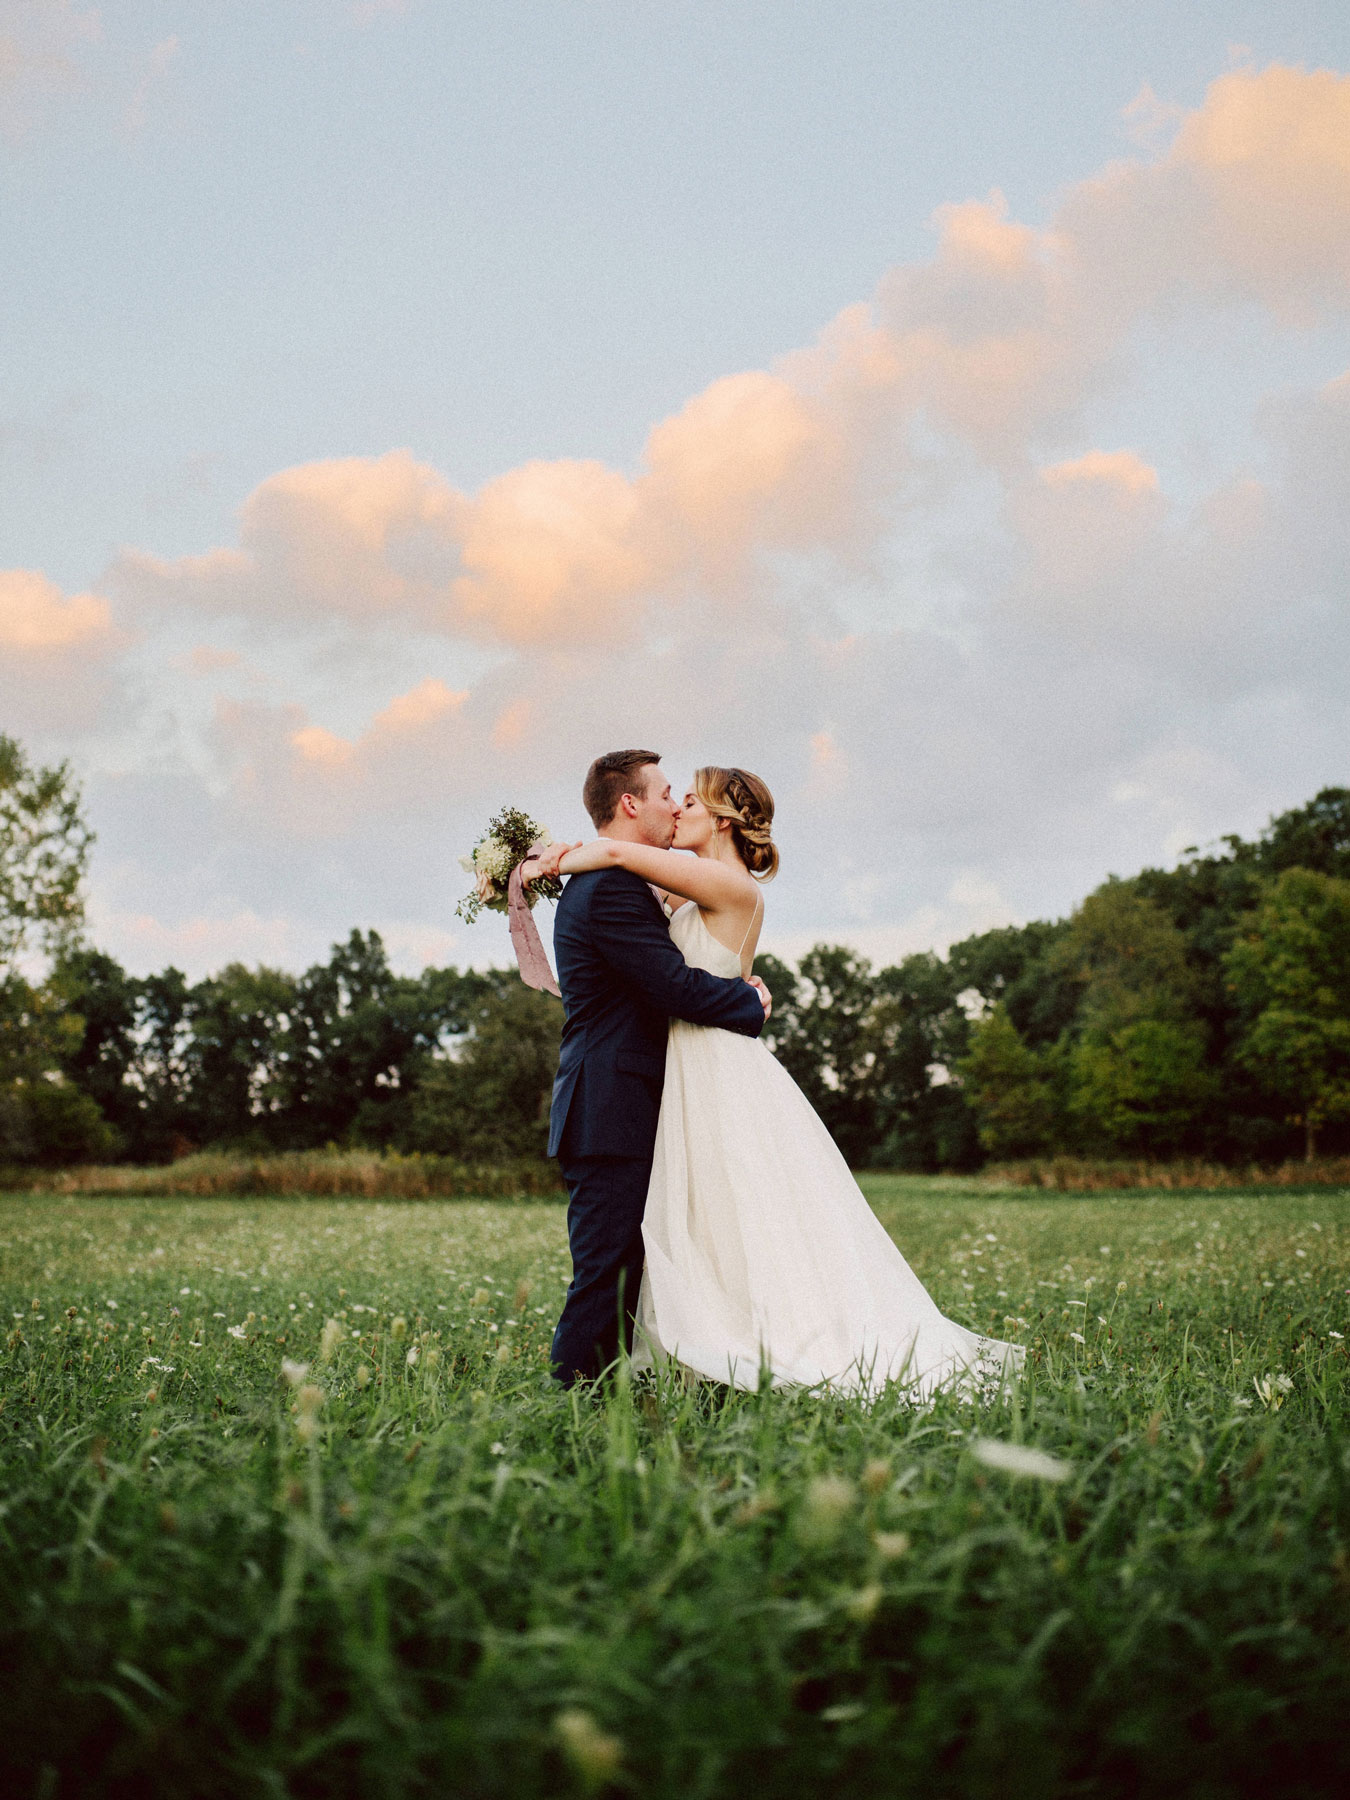 Lush fields for stunning wedding photos